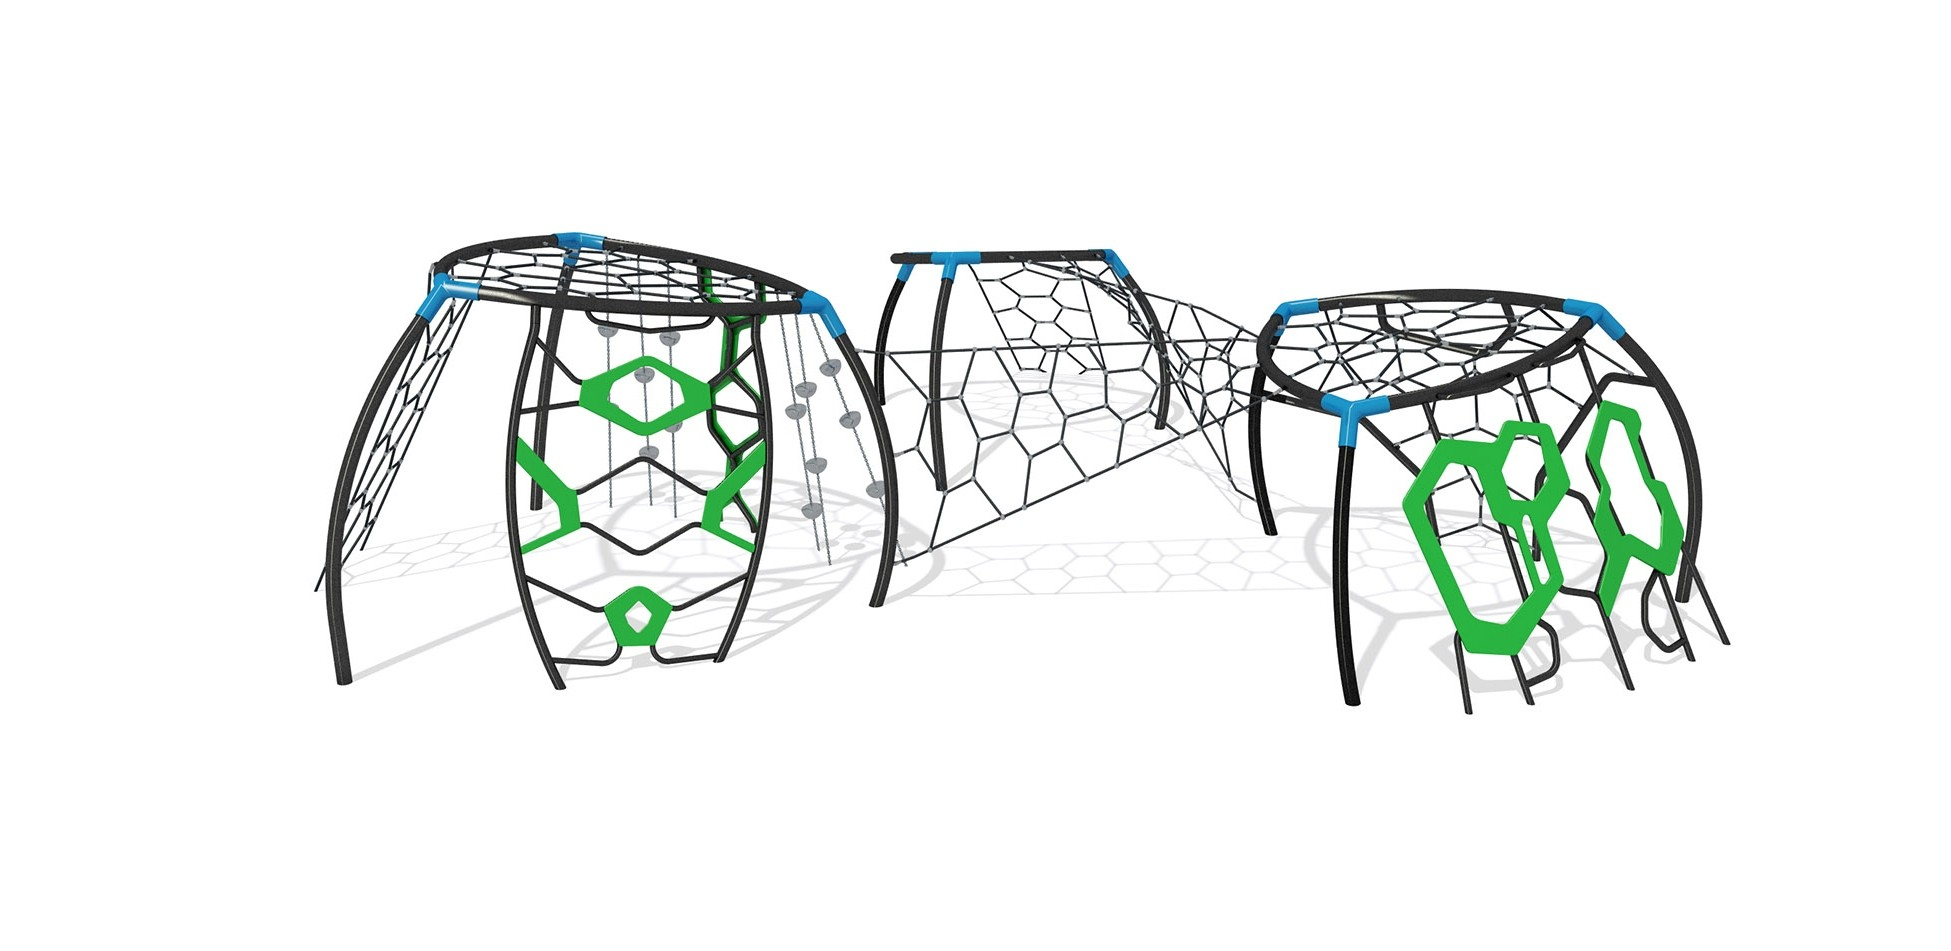 TriNet (Small, Medium and Large) with Twisted Nets